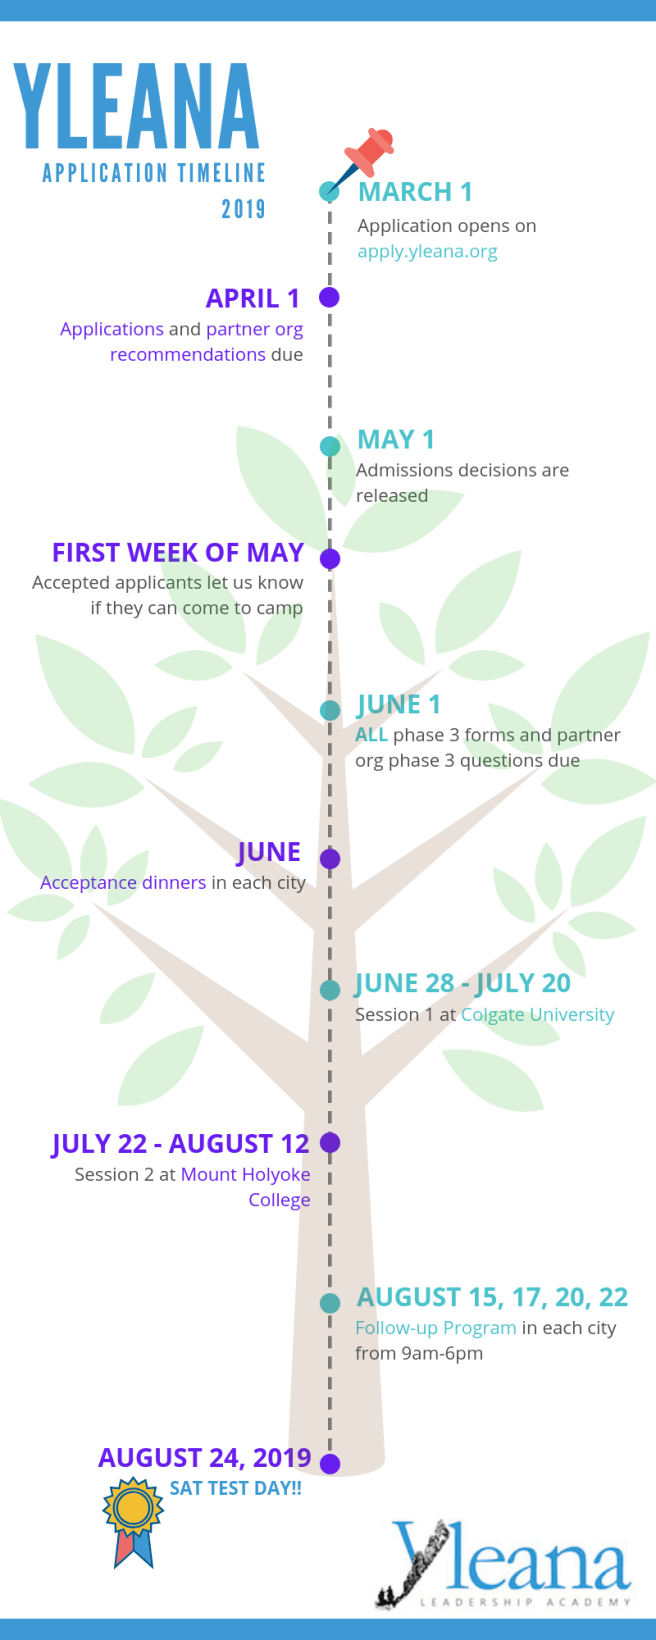 Yleana application timeline 2019.png